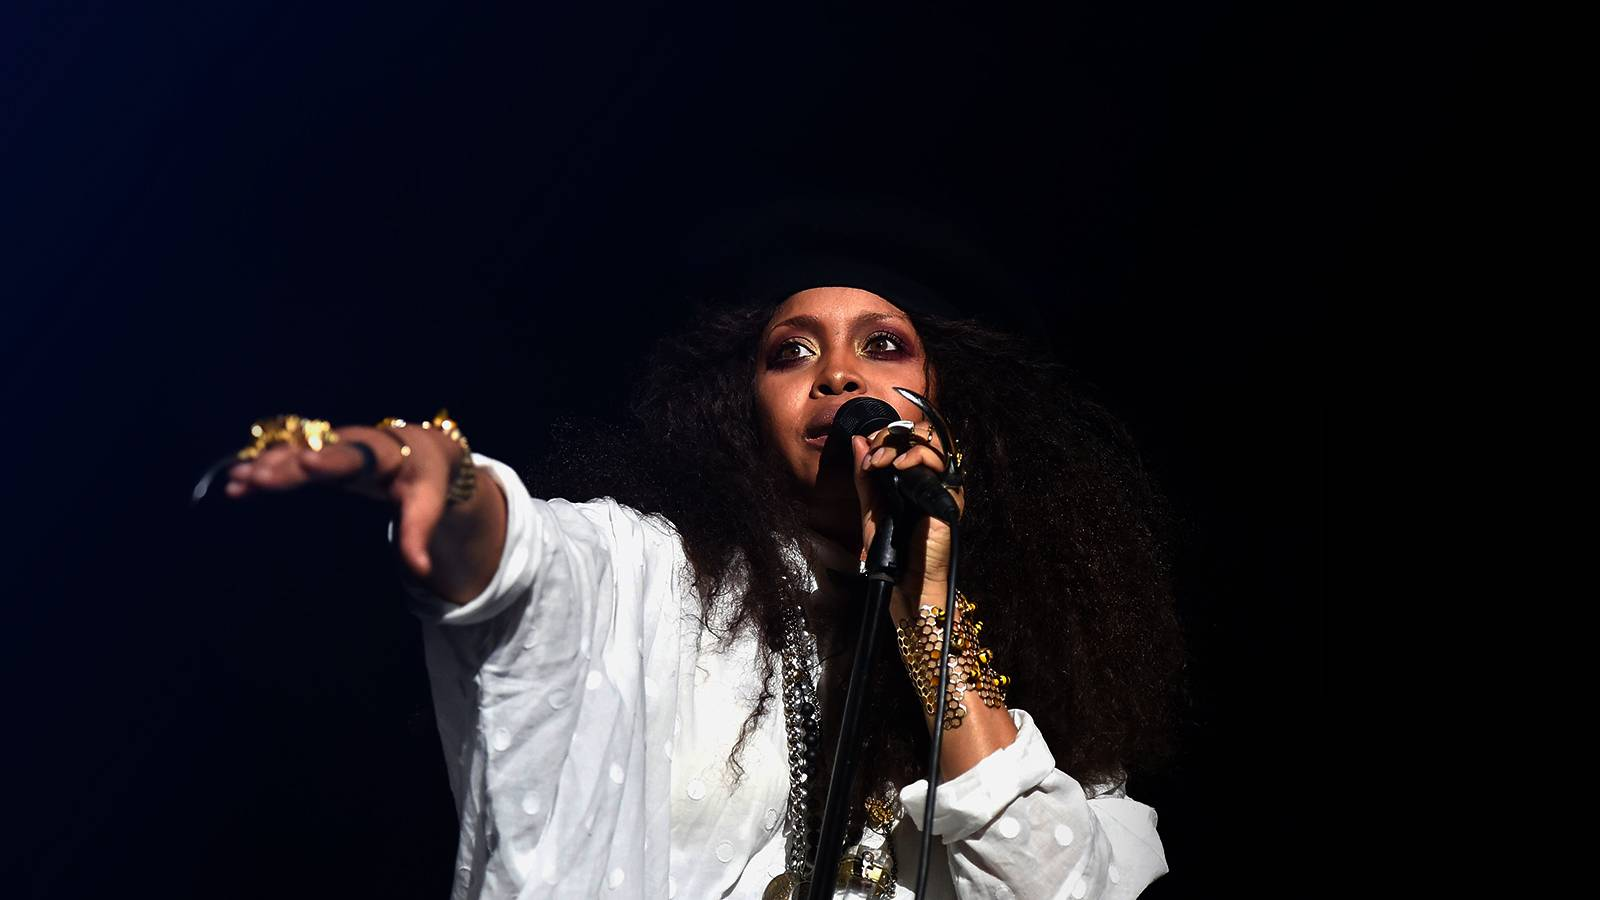 Erykah Badu (Rescheduled from 3/13)